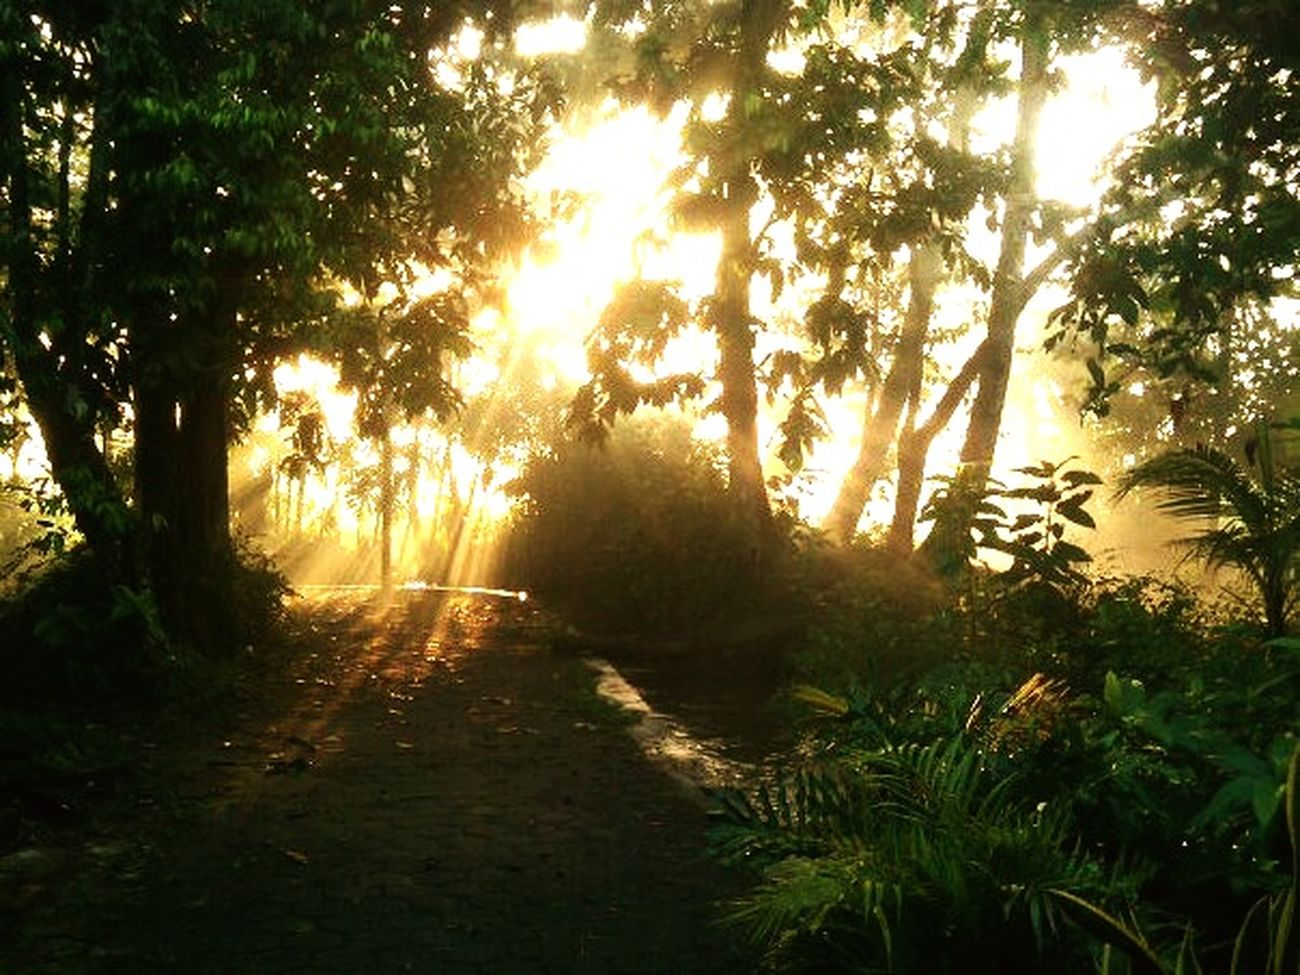 Morning Morning Light Sewon Jogjakarta Kangen Sewon